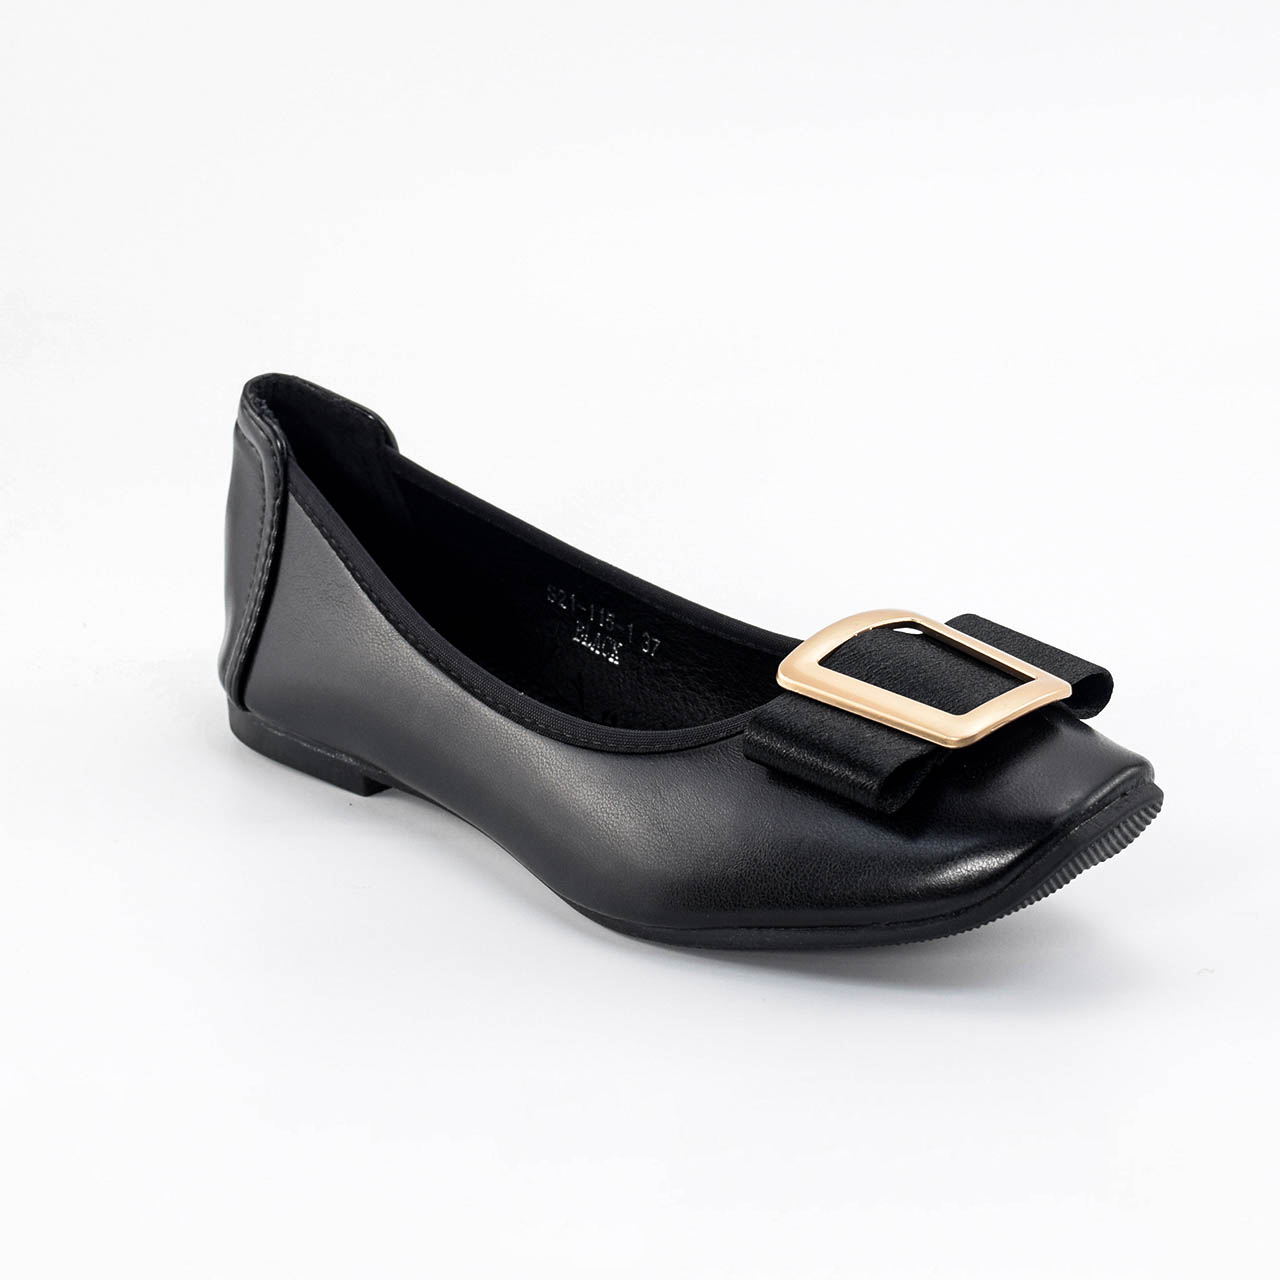 Savanna Flats in Black